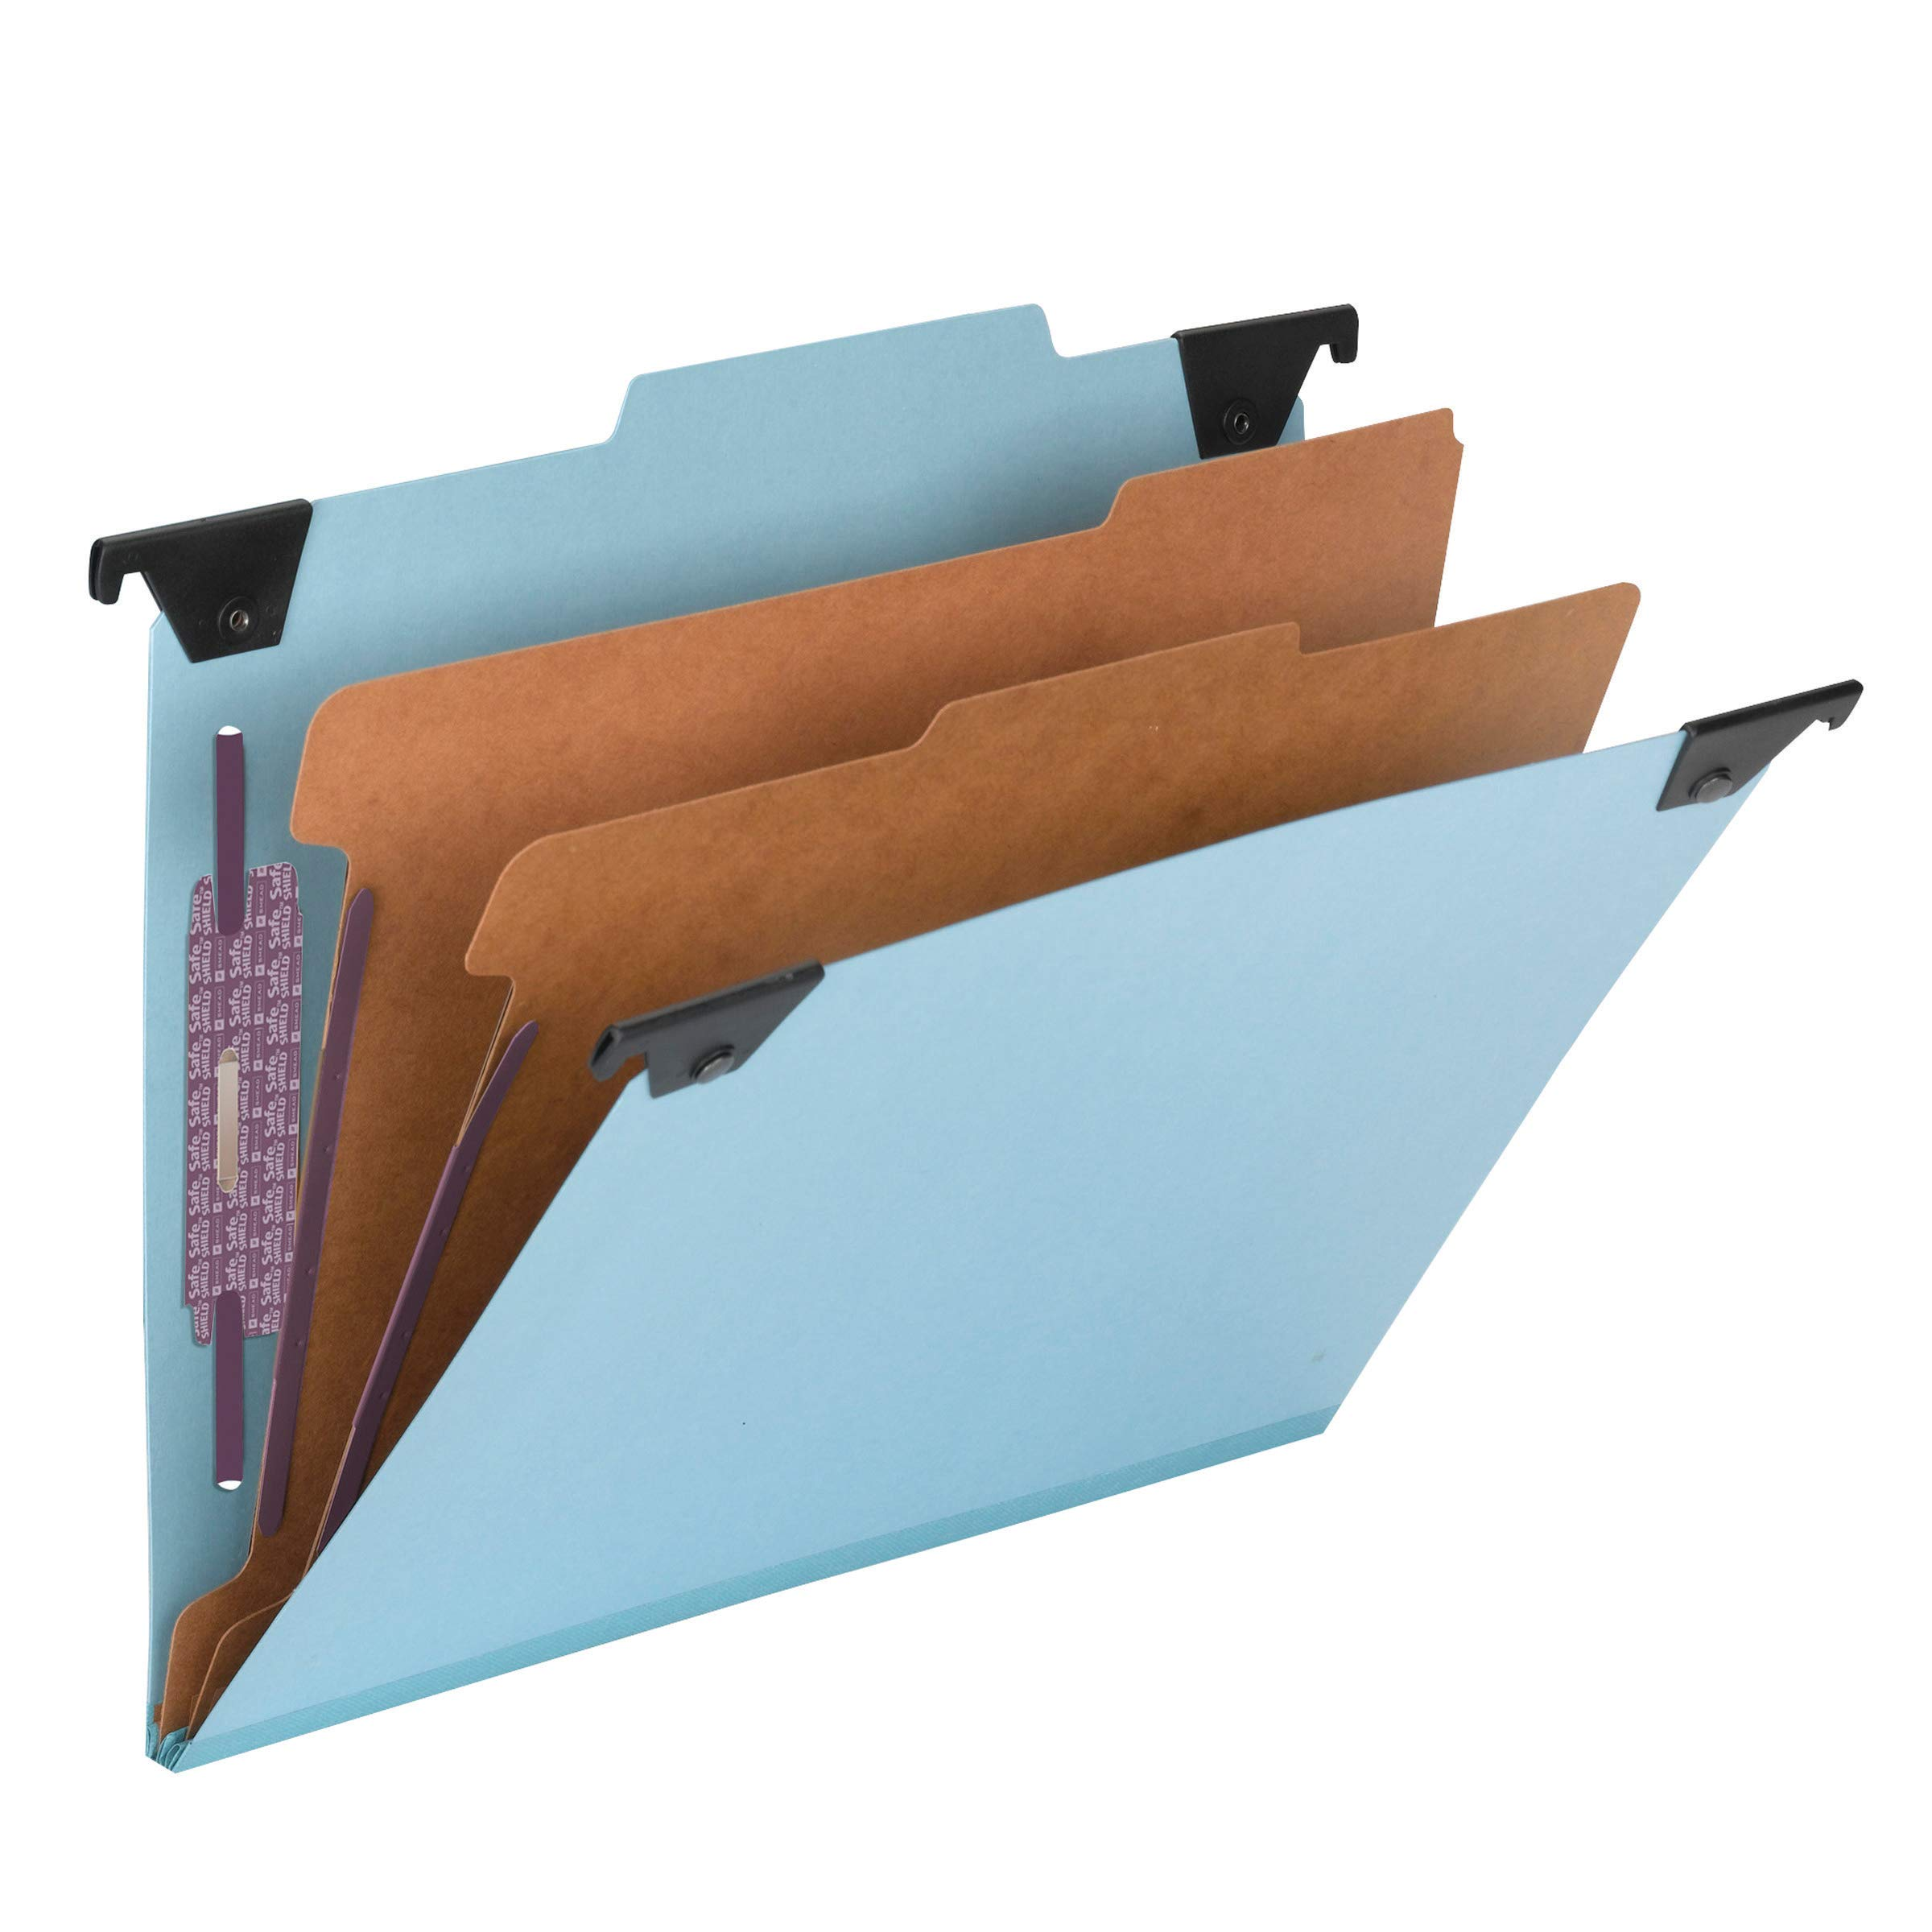 Smead FASTab Hanging Pressboard Classification Folder with SafeSHIELD Fastener, 2 Dividers, 2/5-Cut Built-in Tab, Letter Size, Blue, 10 Per Box (65115) by Smead